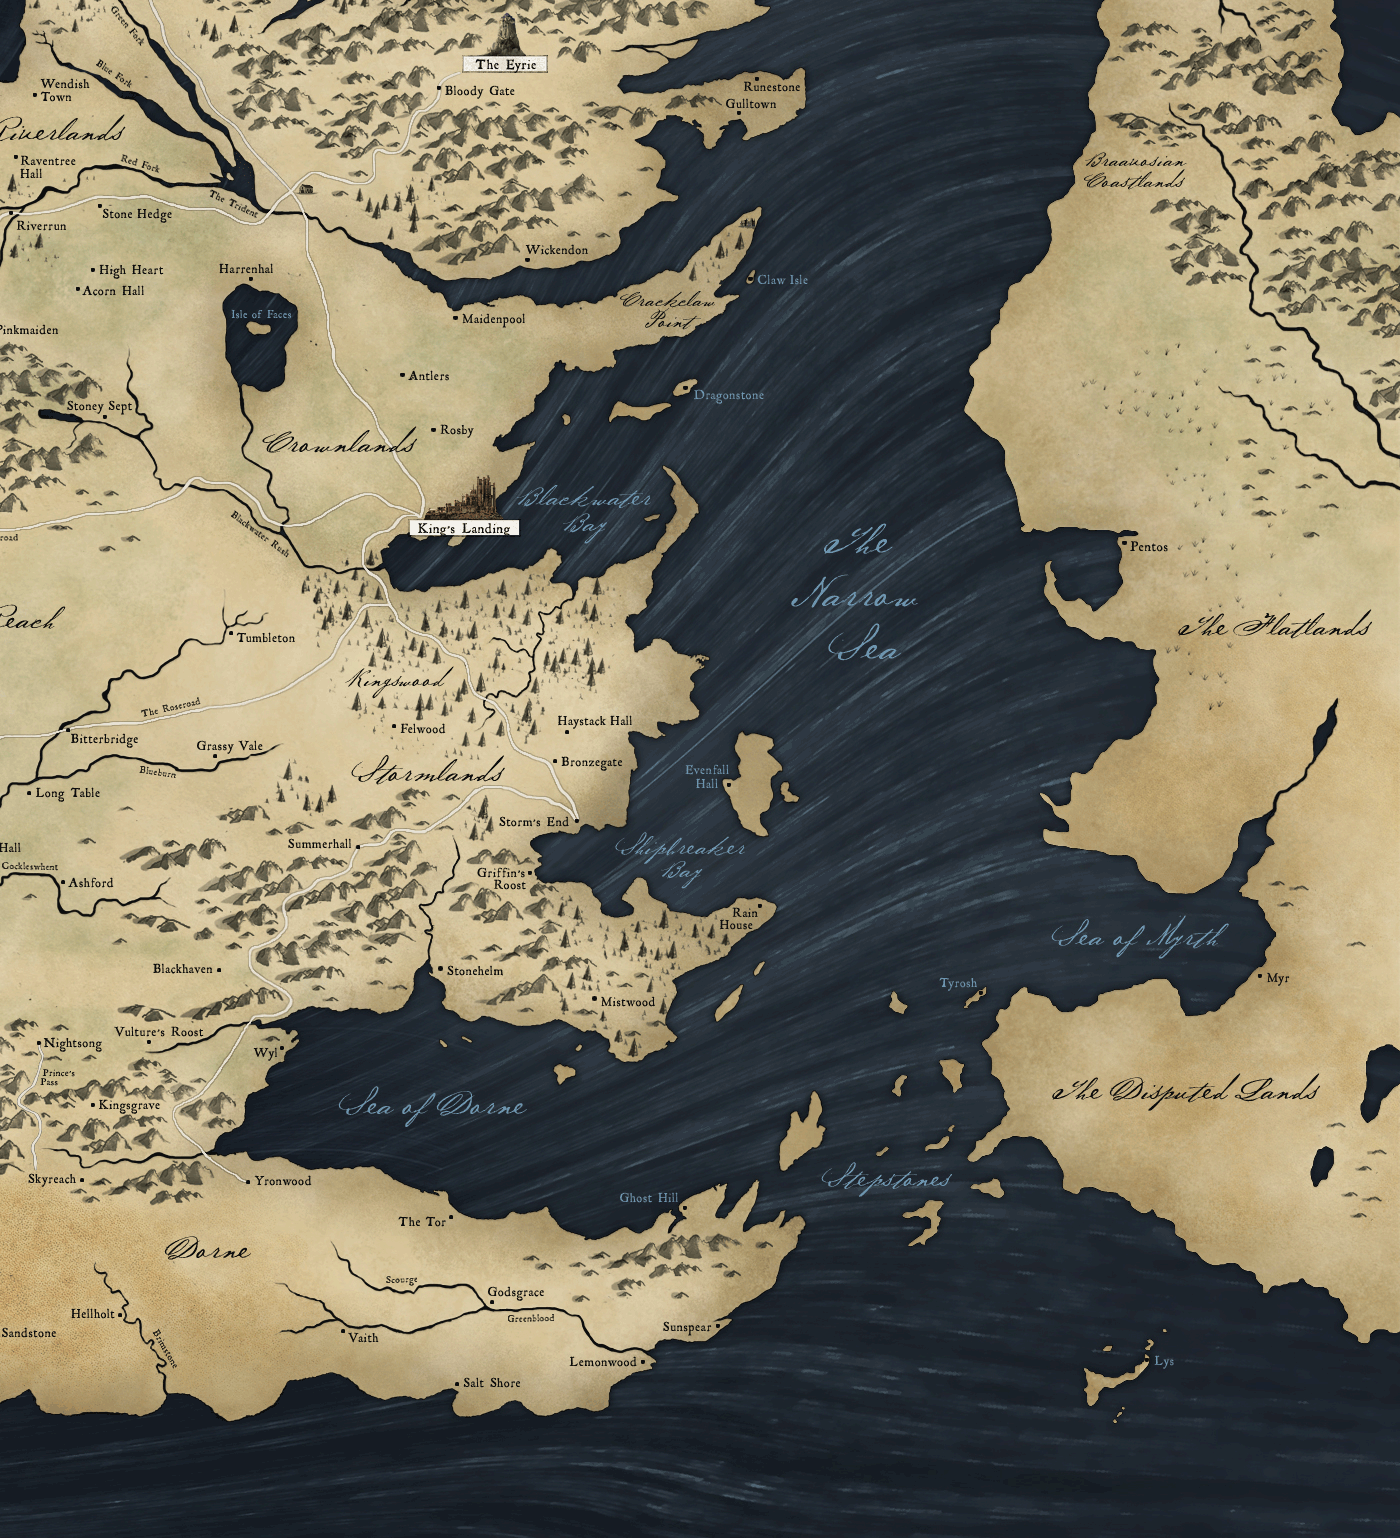 Hbo game of thrones viewers guide with a fancy map syfy fantasy game of thrones viewers guide gumiabroncs Images